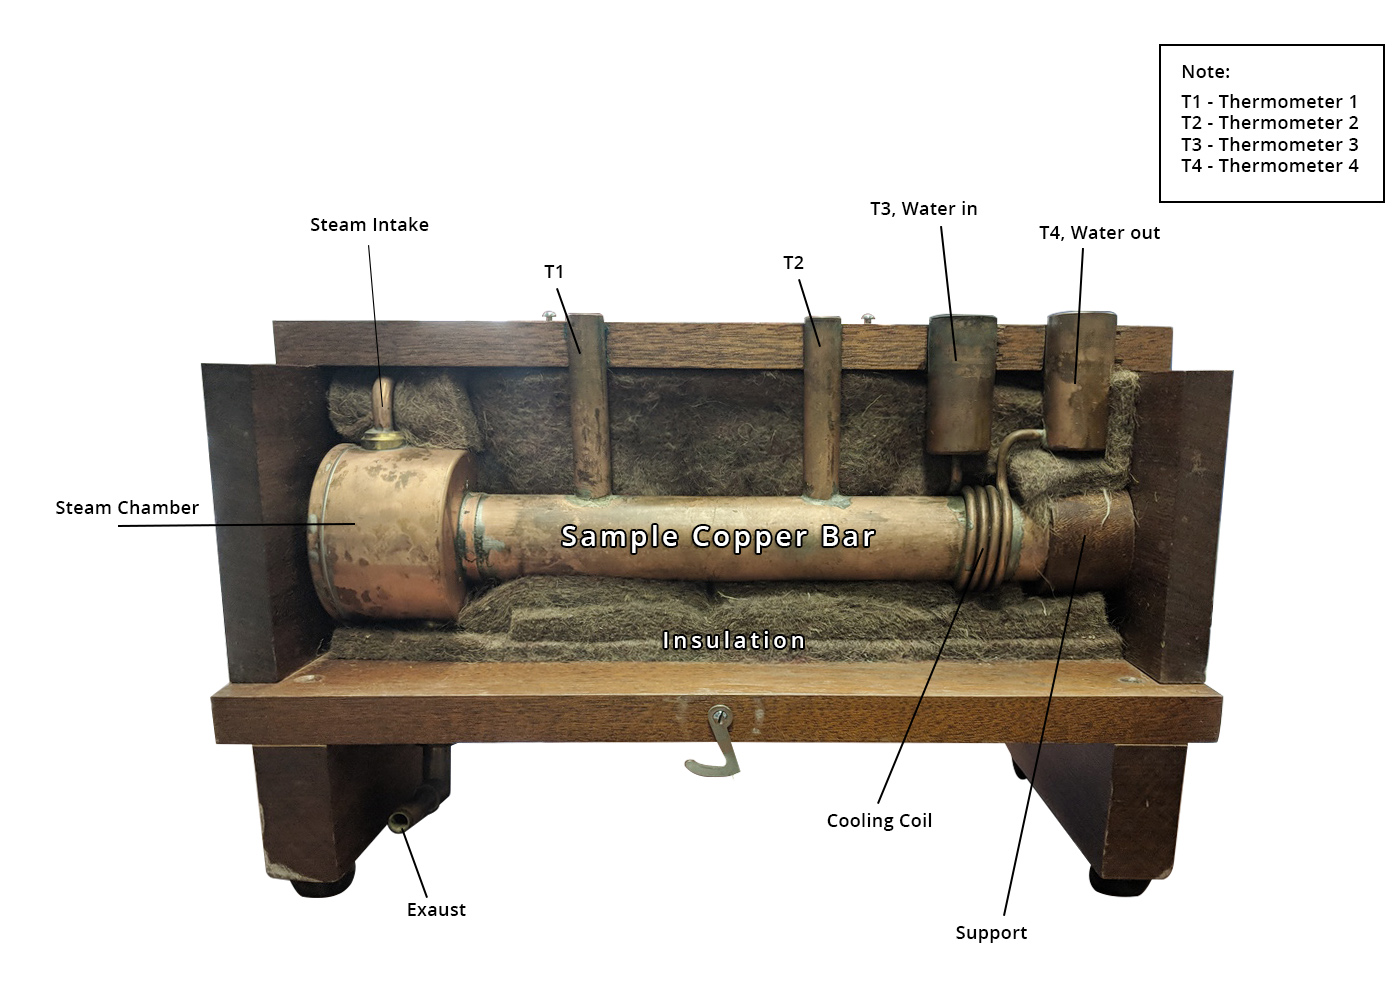 searle's bar apparatus experimental set up